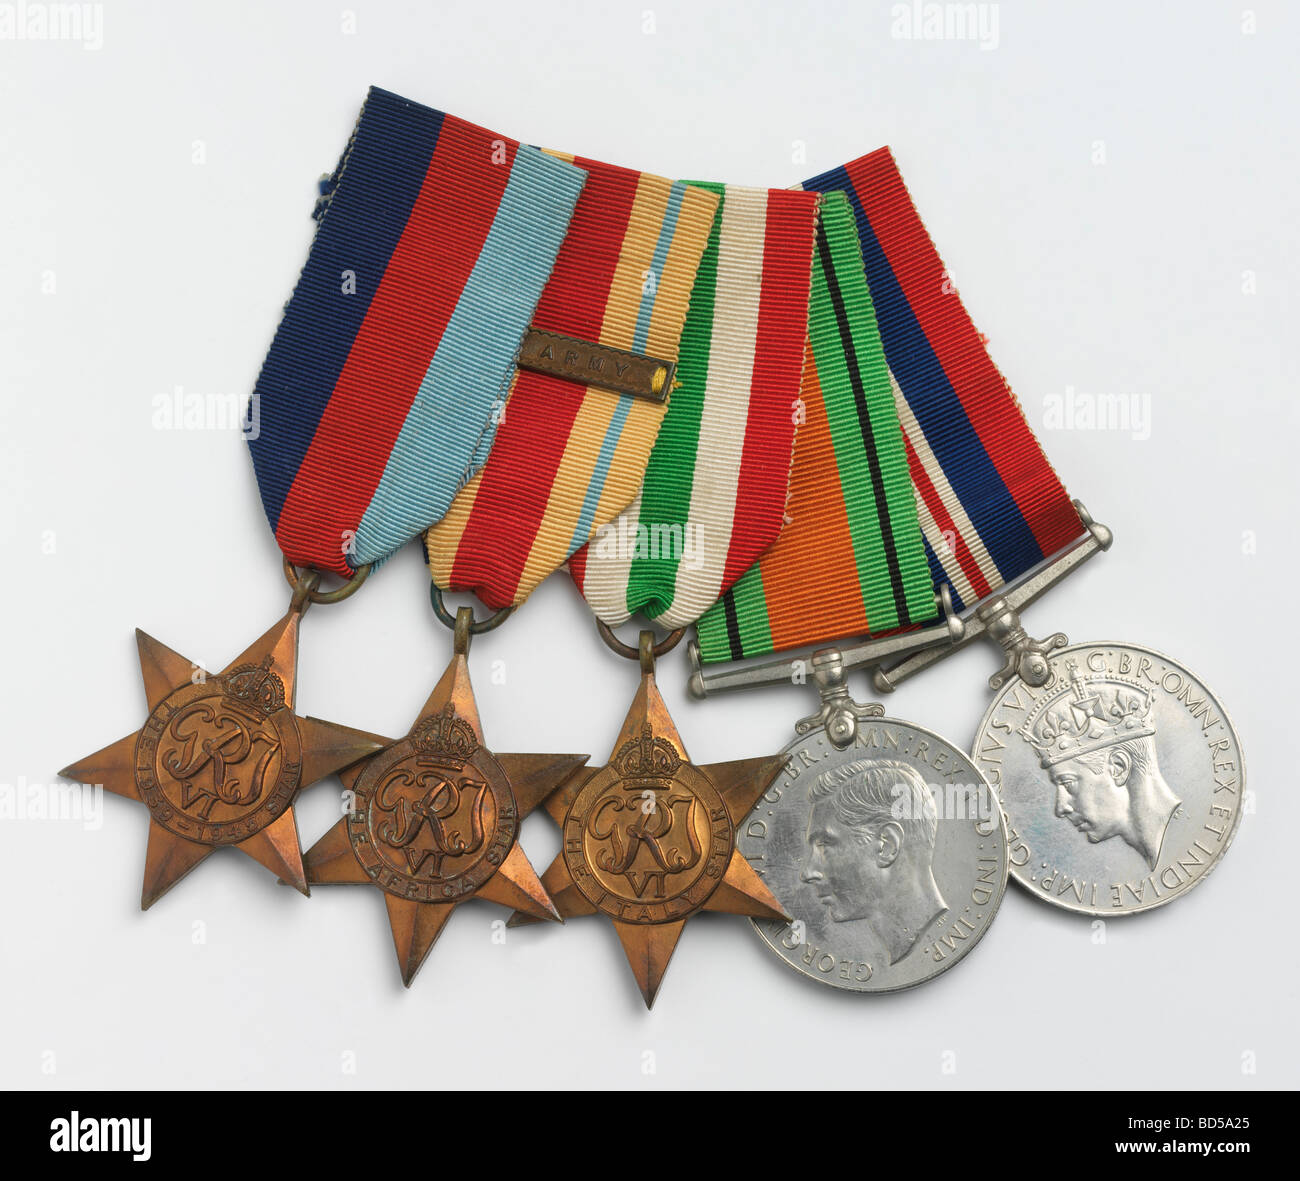 British and Commonwealth campaign medals and ribbons from service in the second world war - Stock Image